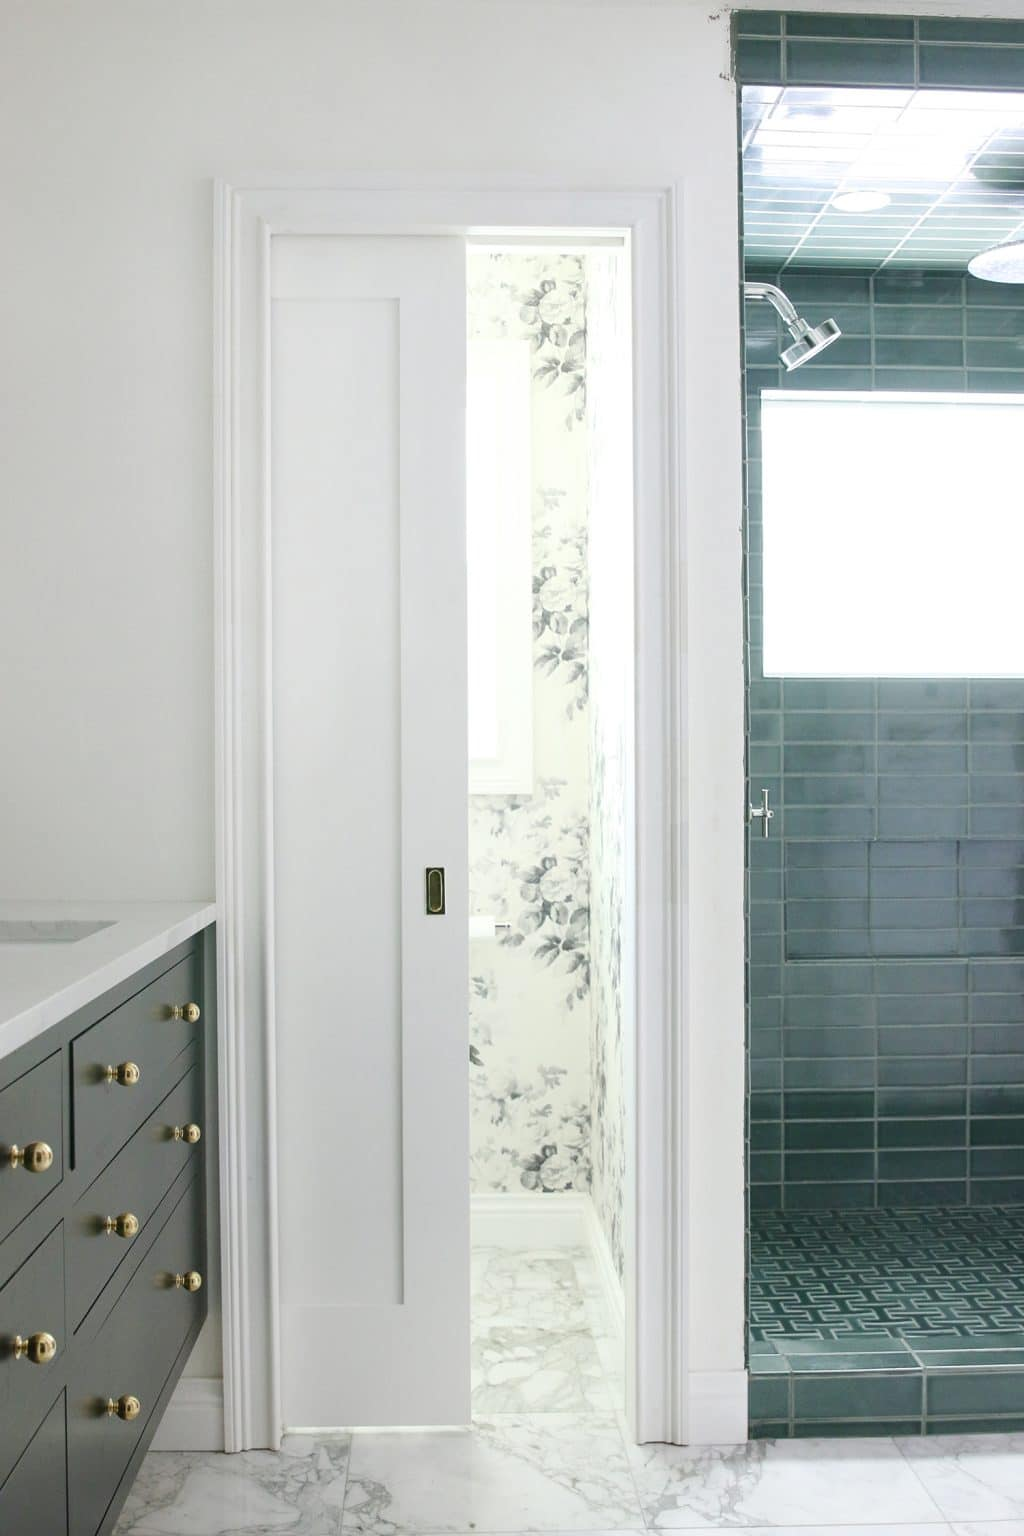 For The Pocket Door Leading Into The Bathroom, The Wall Is Thicker On The  Bathroom Side Than It Is On The Bedroom Side. This Was Done To Both Allow  Room For ...